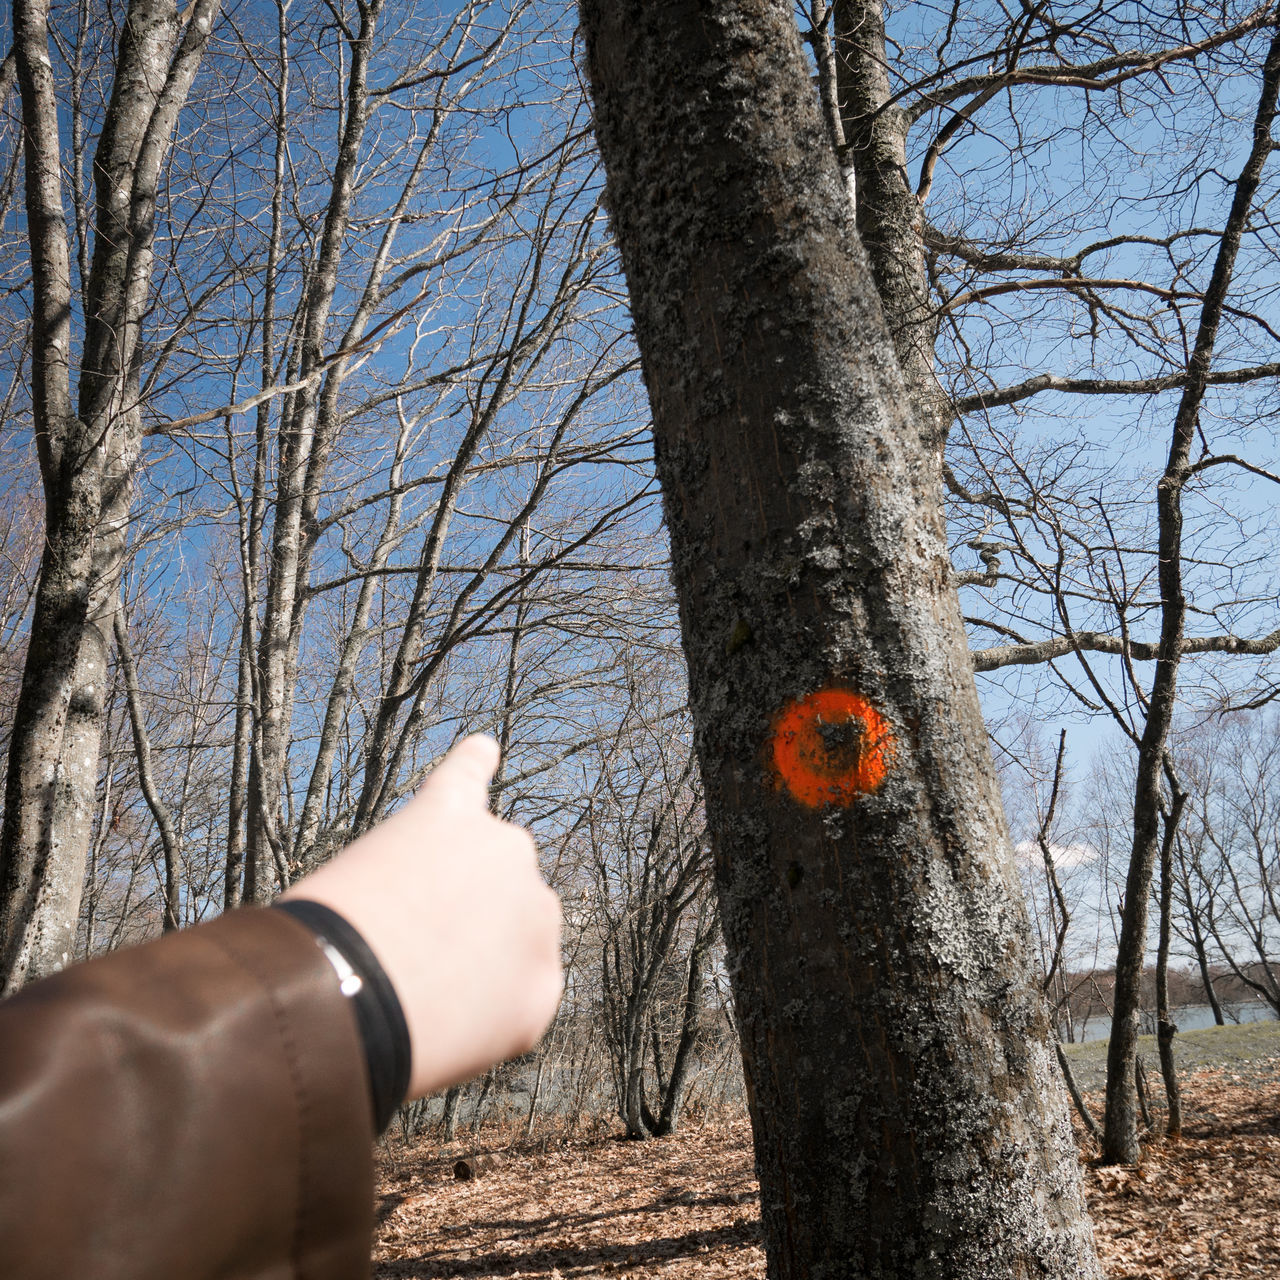 Cropped Hand Pointing At Orange Paint On Bare Tree Trunk In Forest